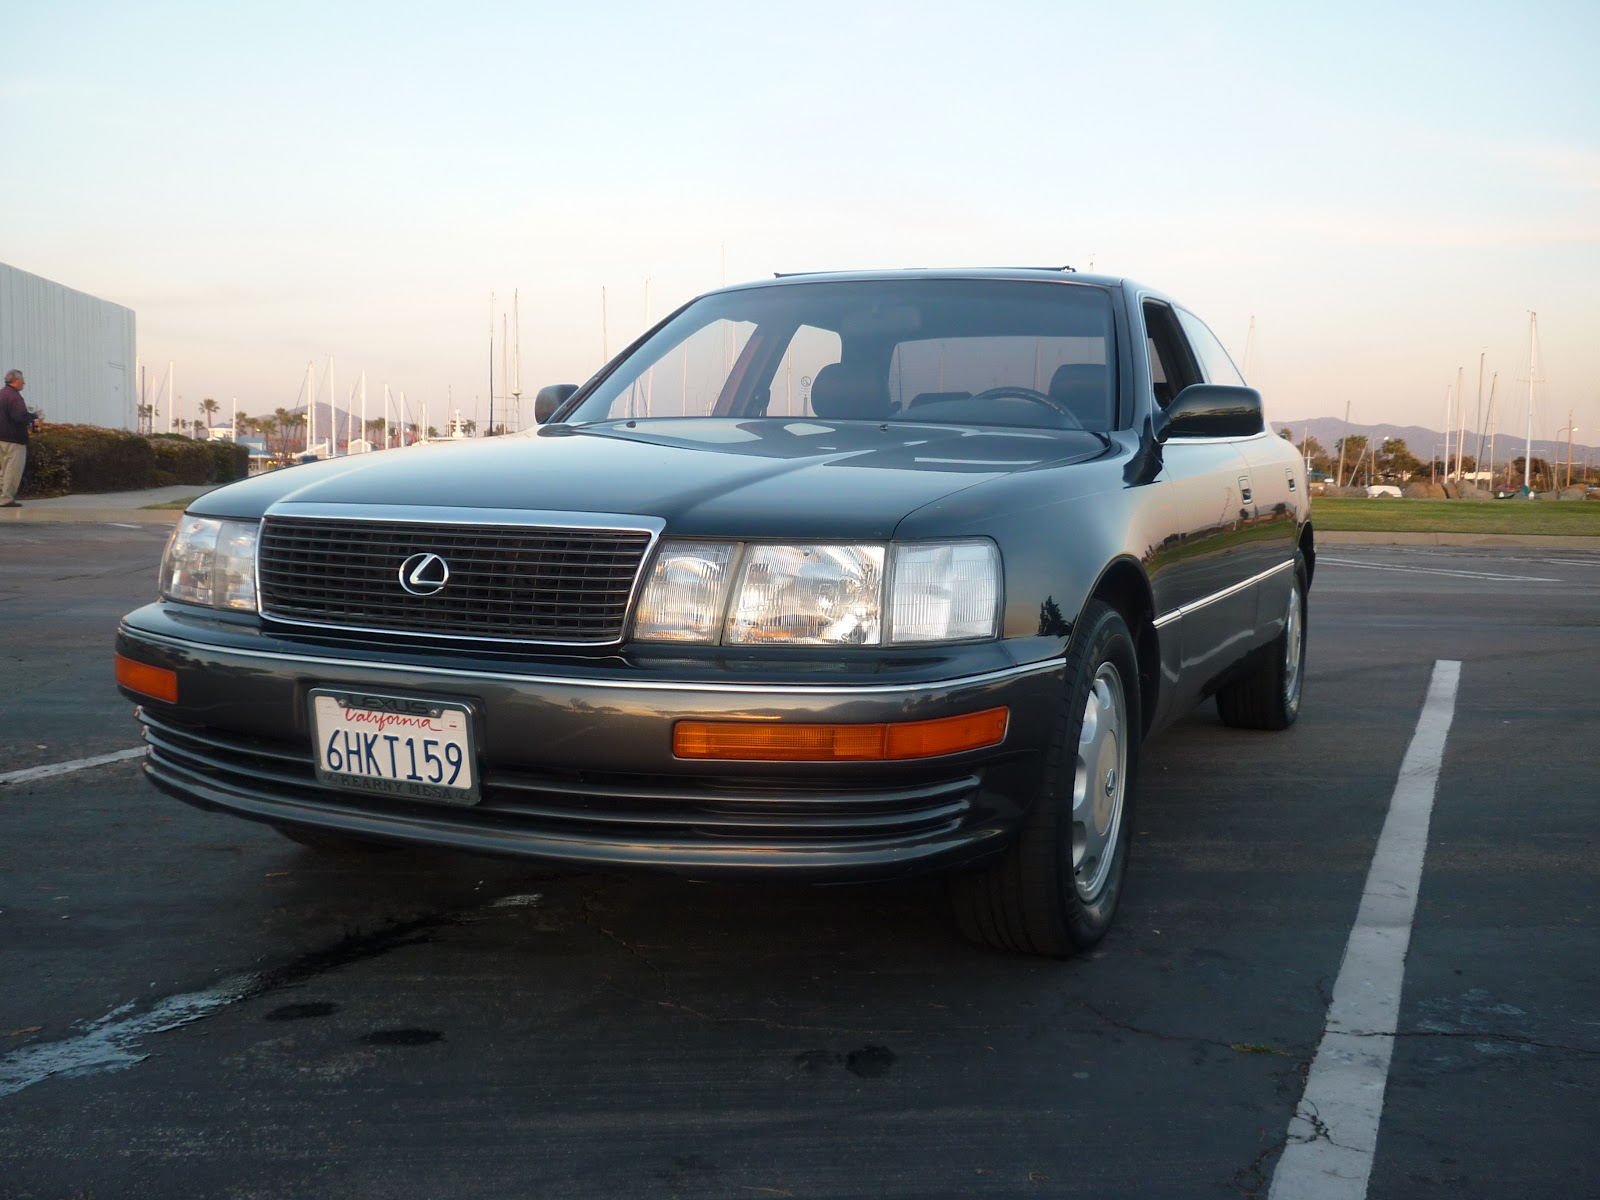 Classic Cars Authority 1993 Lexus LS400 for sale plus bonus